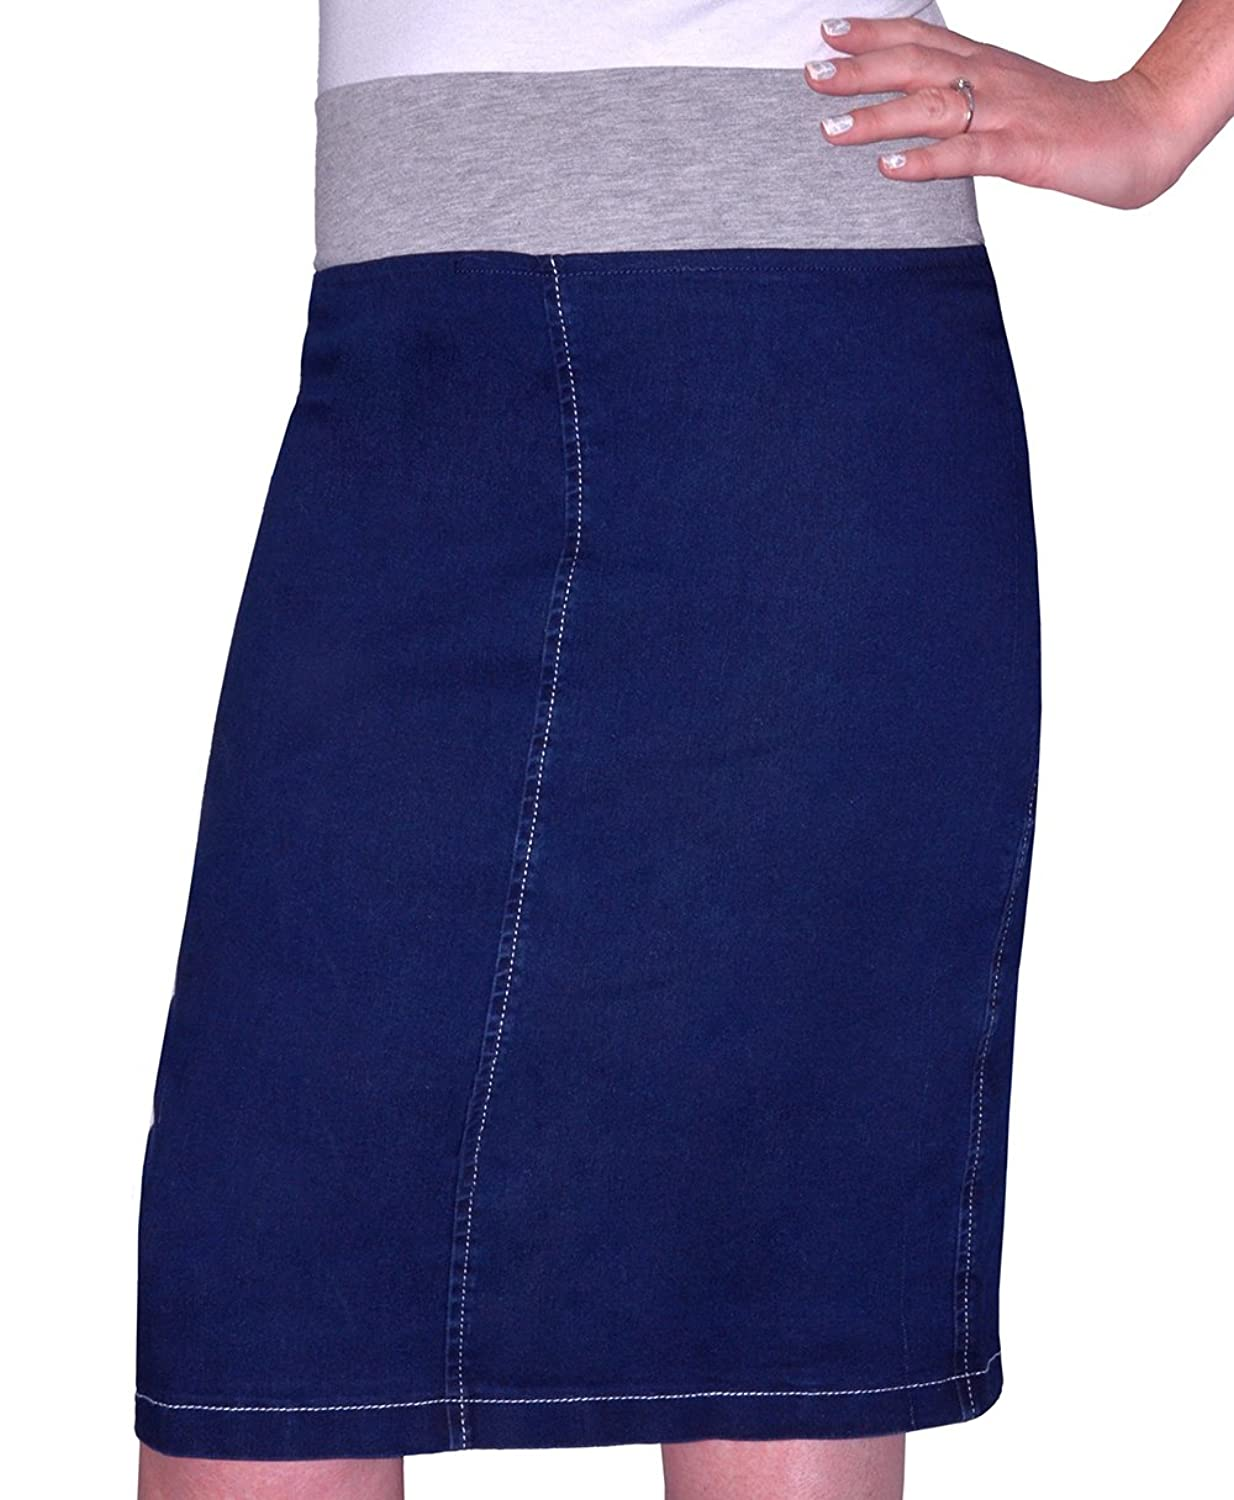 7ff8bf1135 Below the knee pencil jean skirt. Closed hem. Cotton denim with a touch of  poly & spandex for a perfect fit. Stretch waistband gives sizing  flexibility, ...